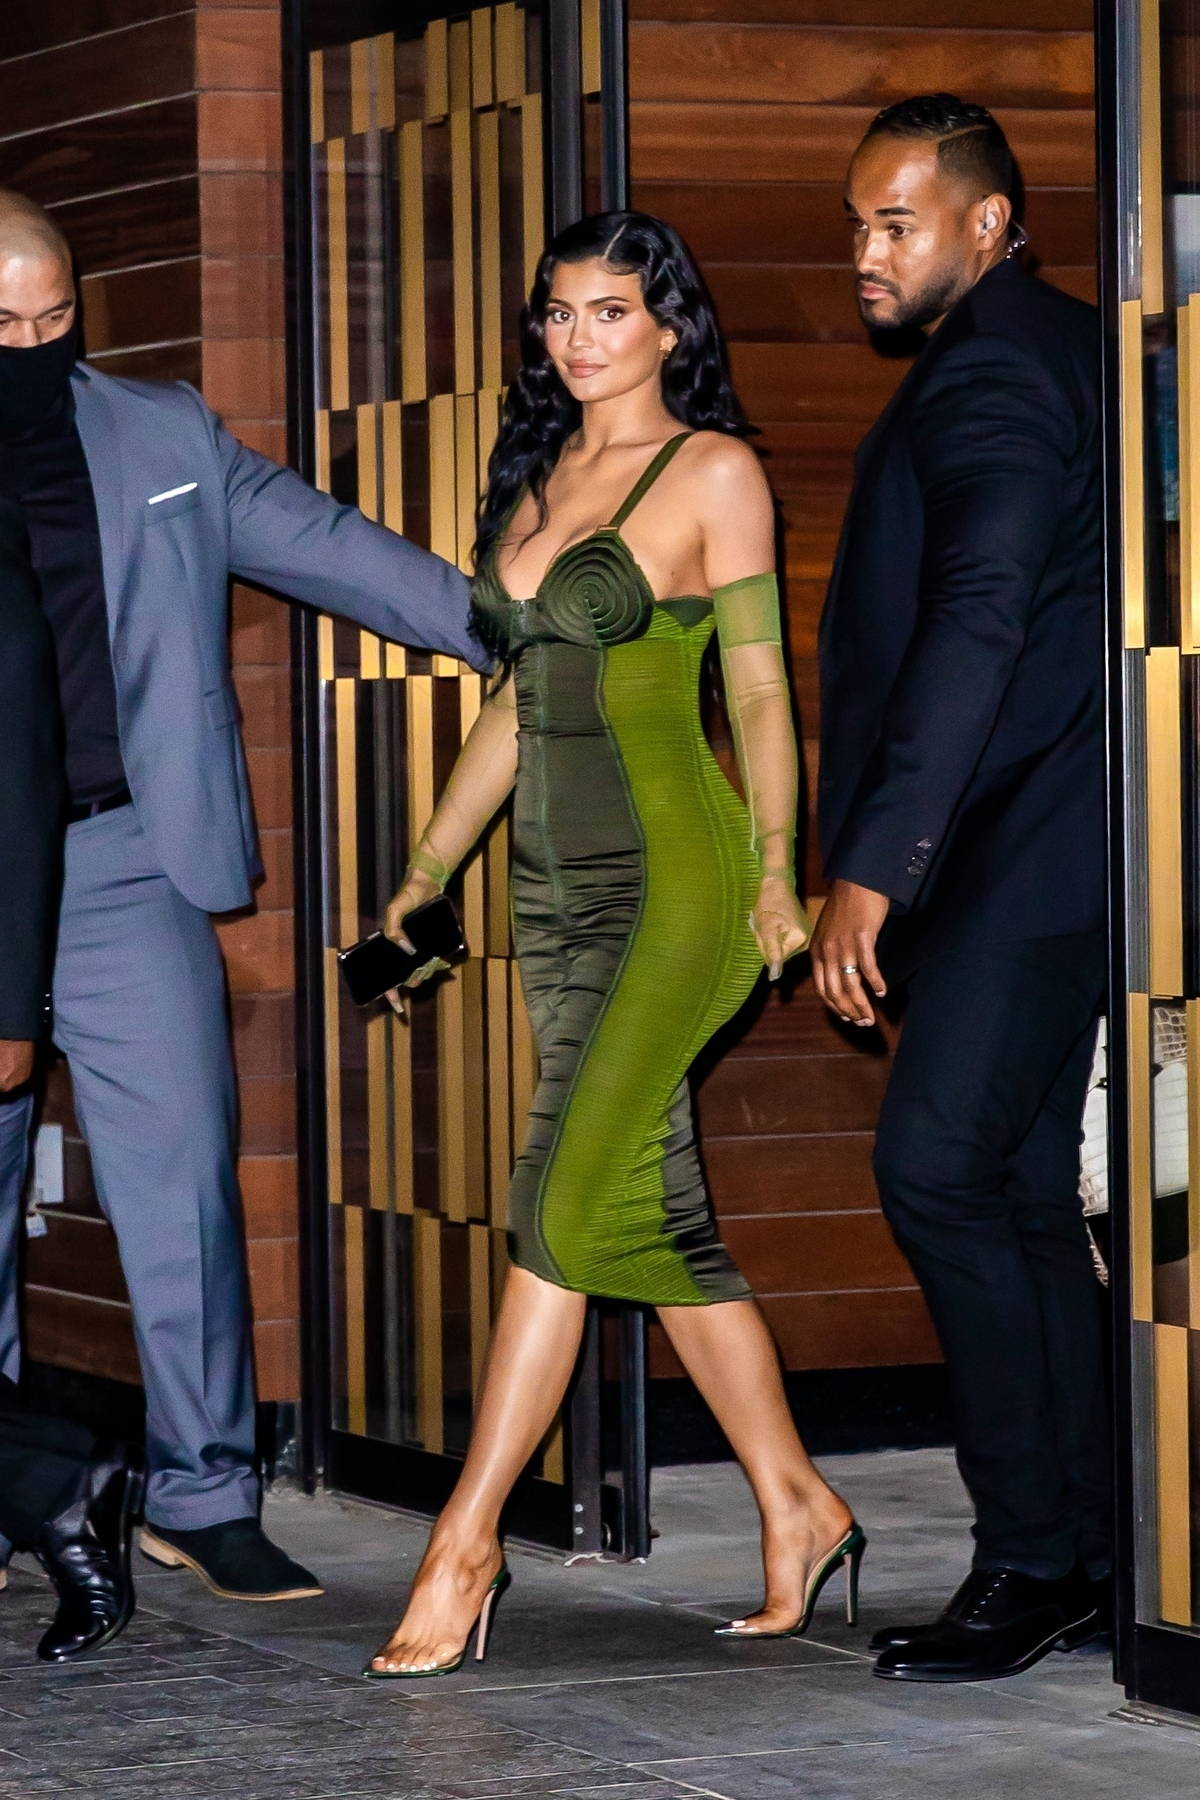 Kylie Jenner stuns in a green bodycon dress as she heads to the 72nd annual Parsons Benefit in New York City